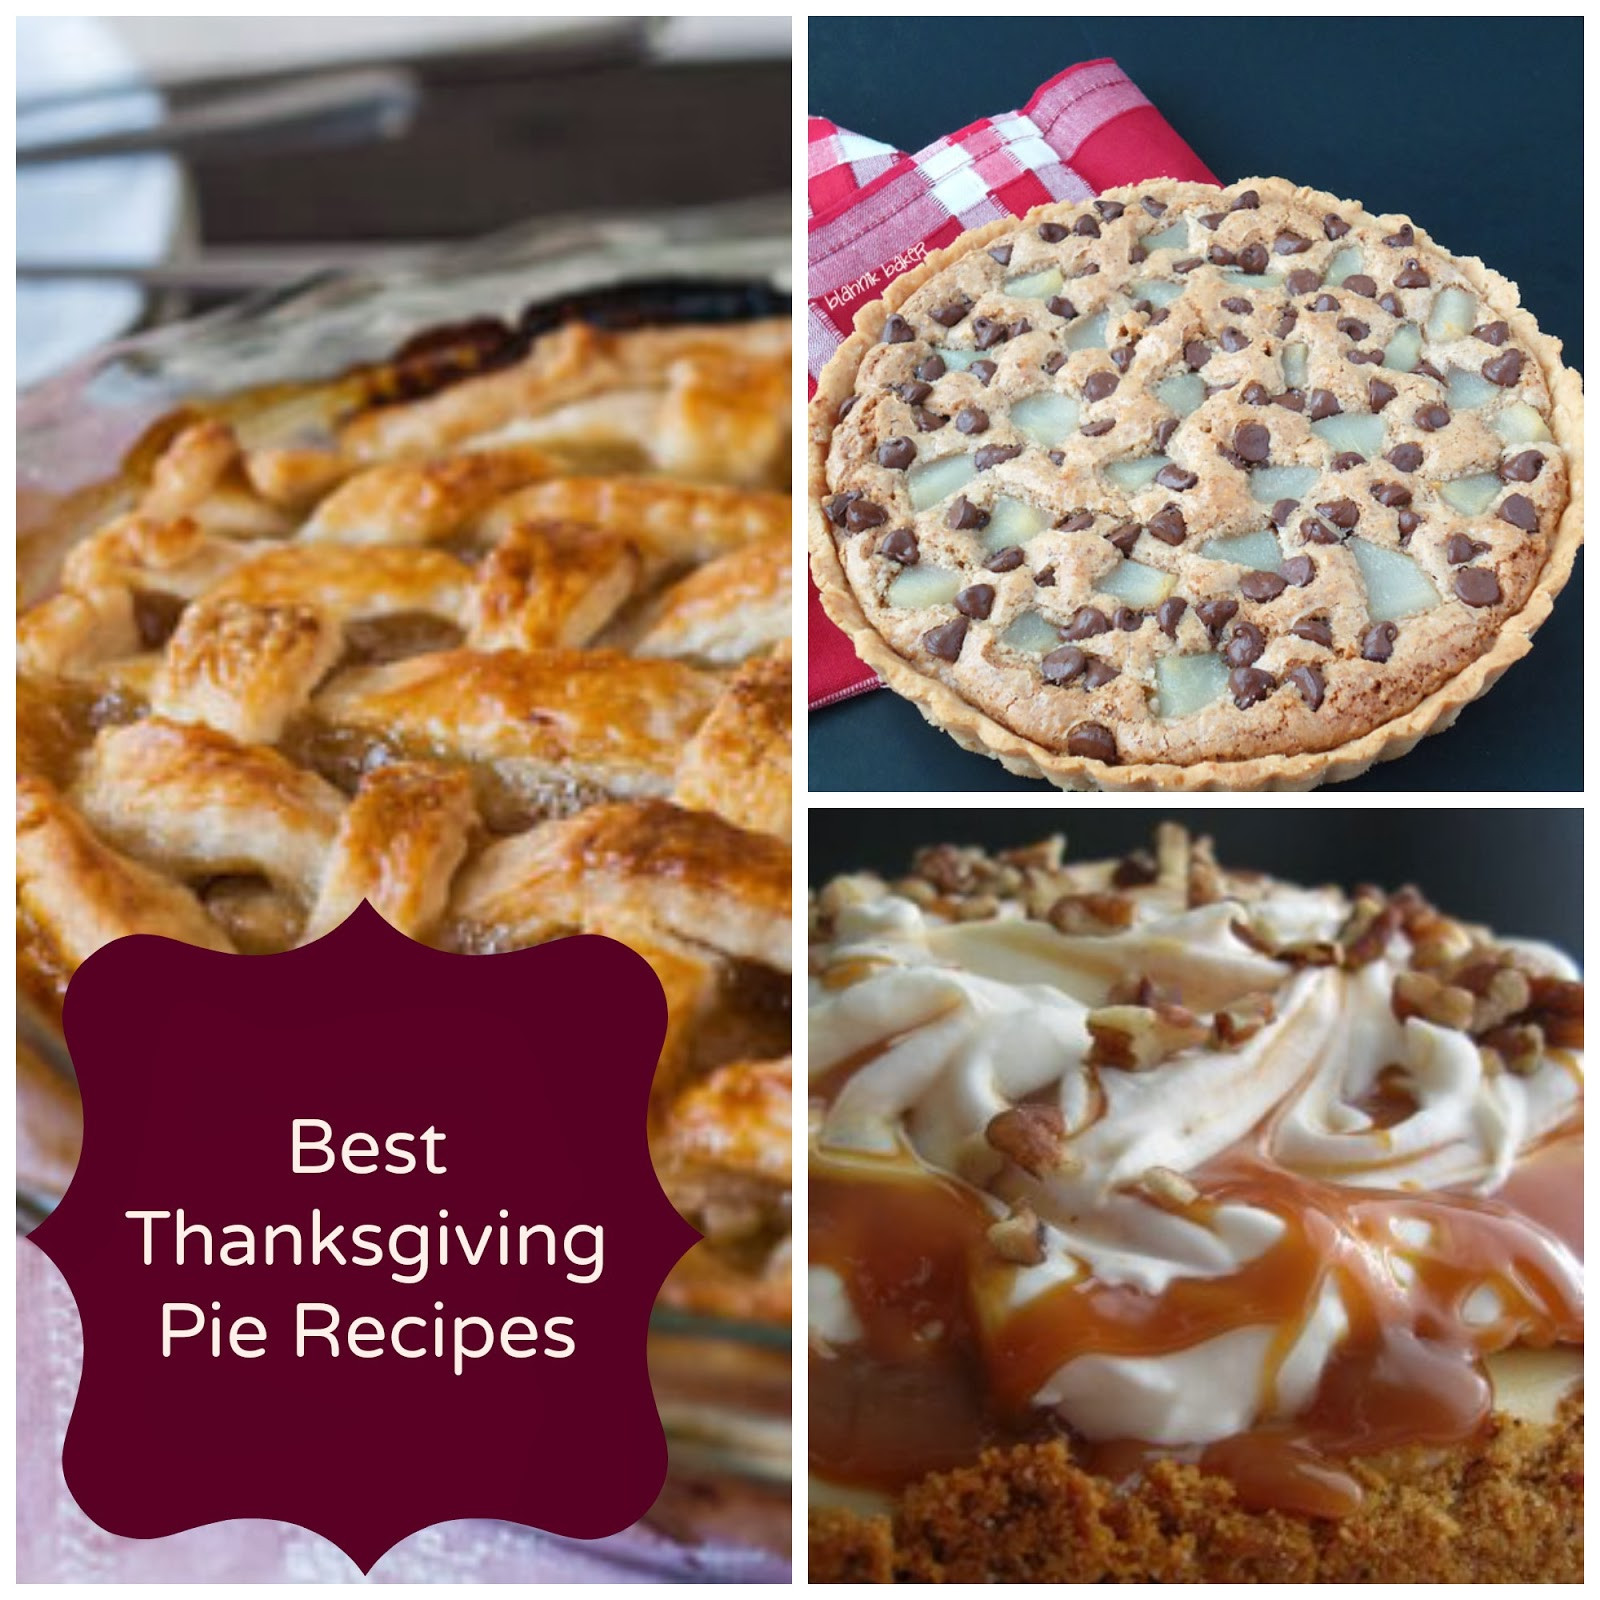 Best Thanksgiving Pie Recipes  Decorating Pennies Best Thanksgiving Pie Recipes